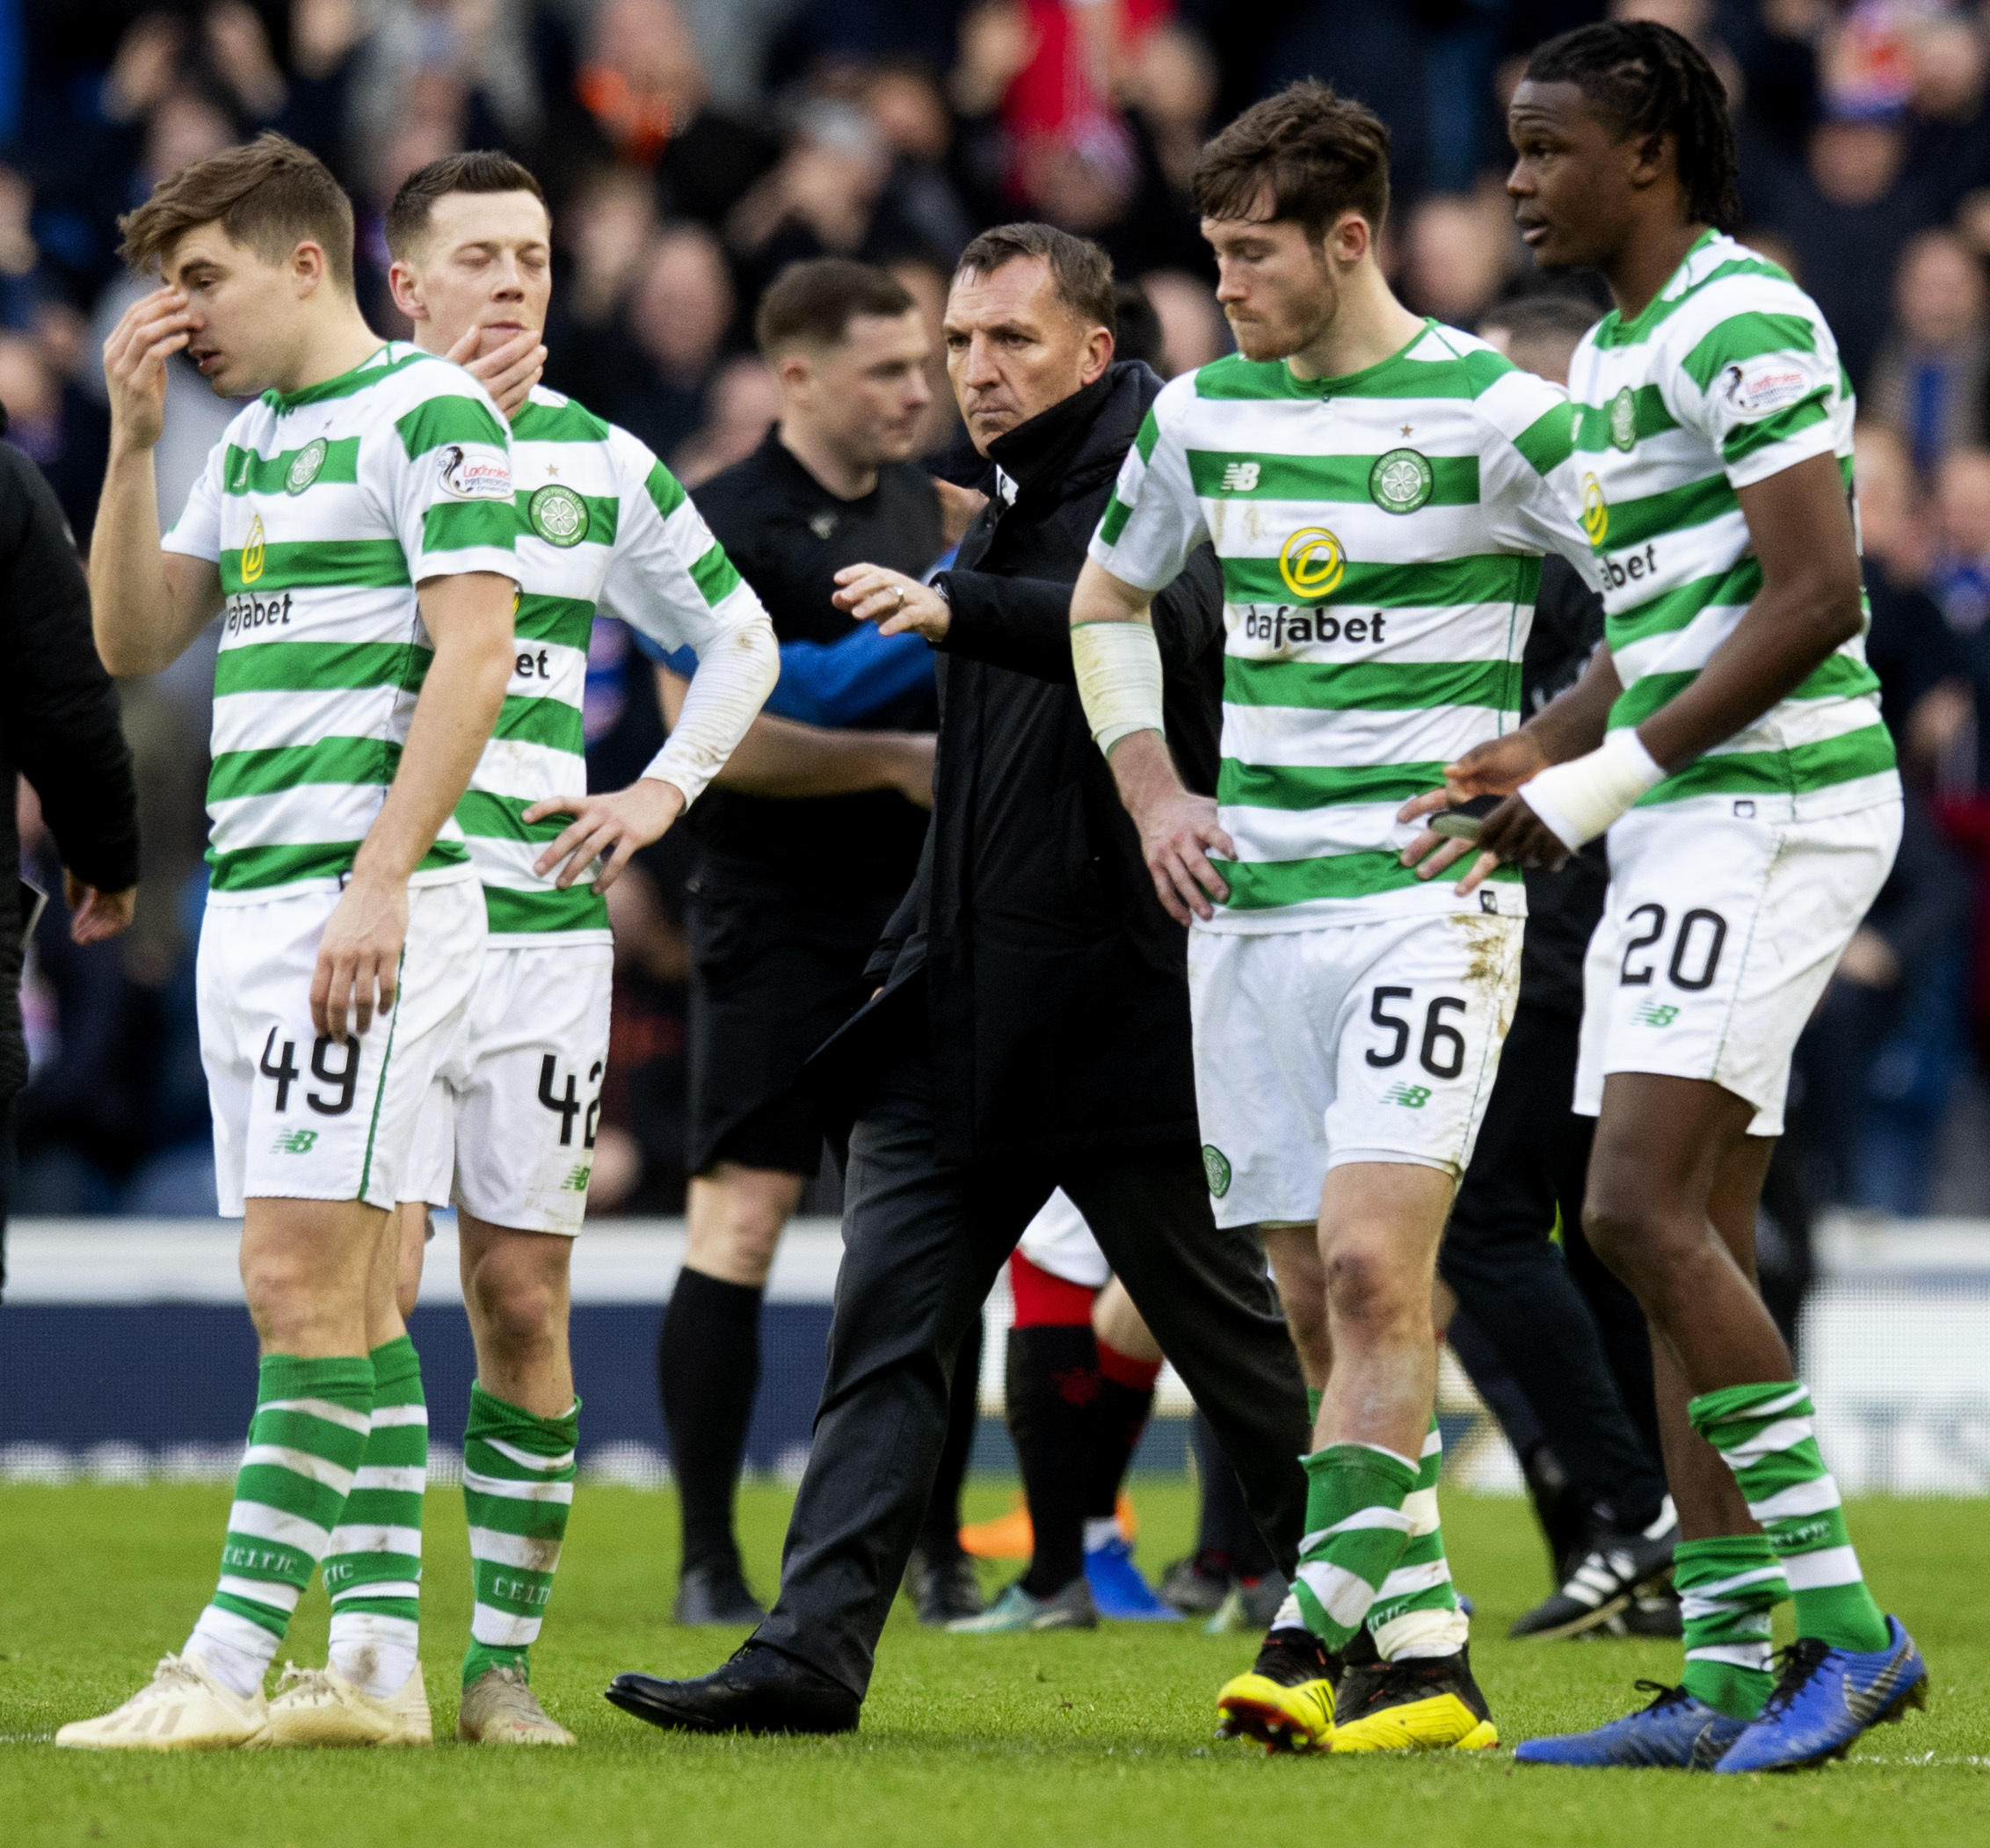 Celtic players, from left to right, James Forrest, Callum McGregor, Brendan Rodgers, Anthony Ralston and Dedryck Boyata after the 1-0 defeat to Rangers at Ibrox in December.